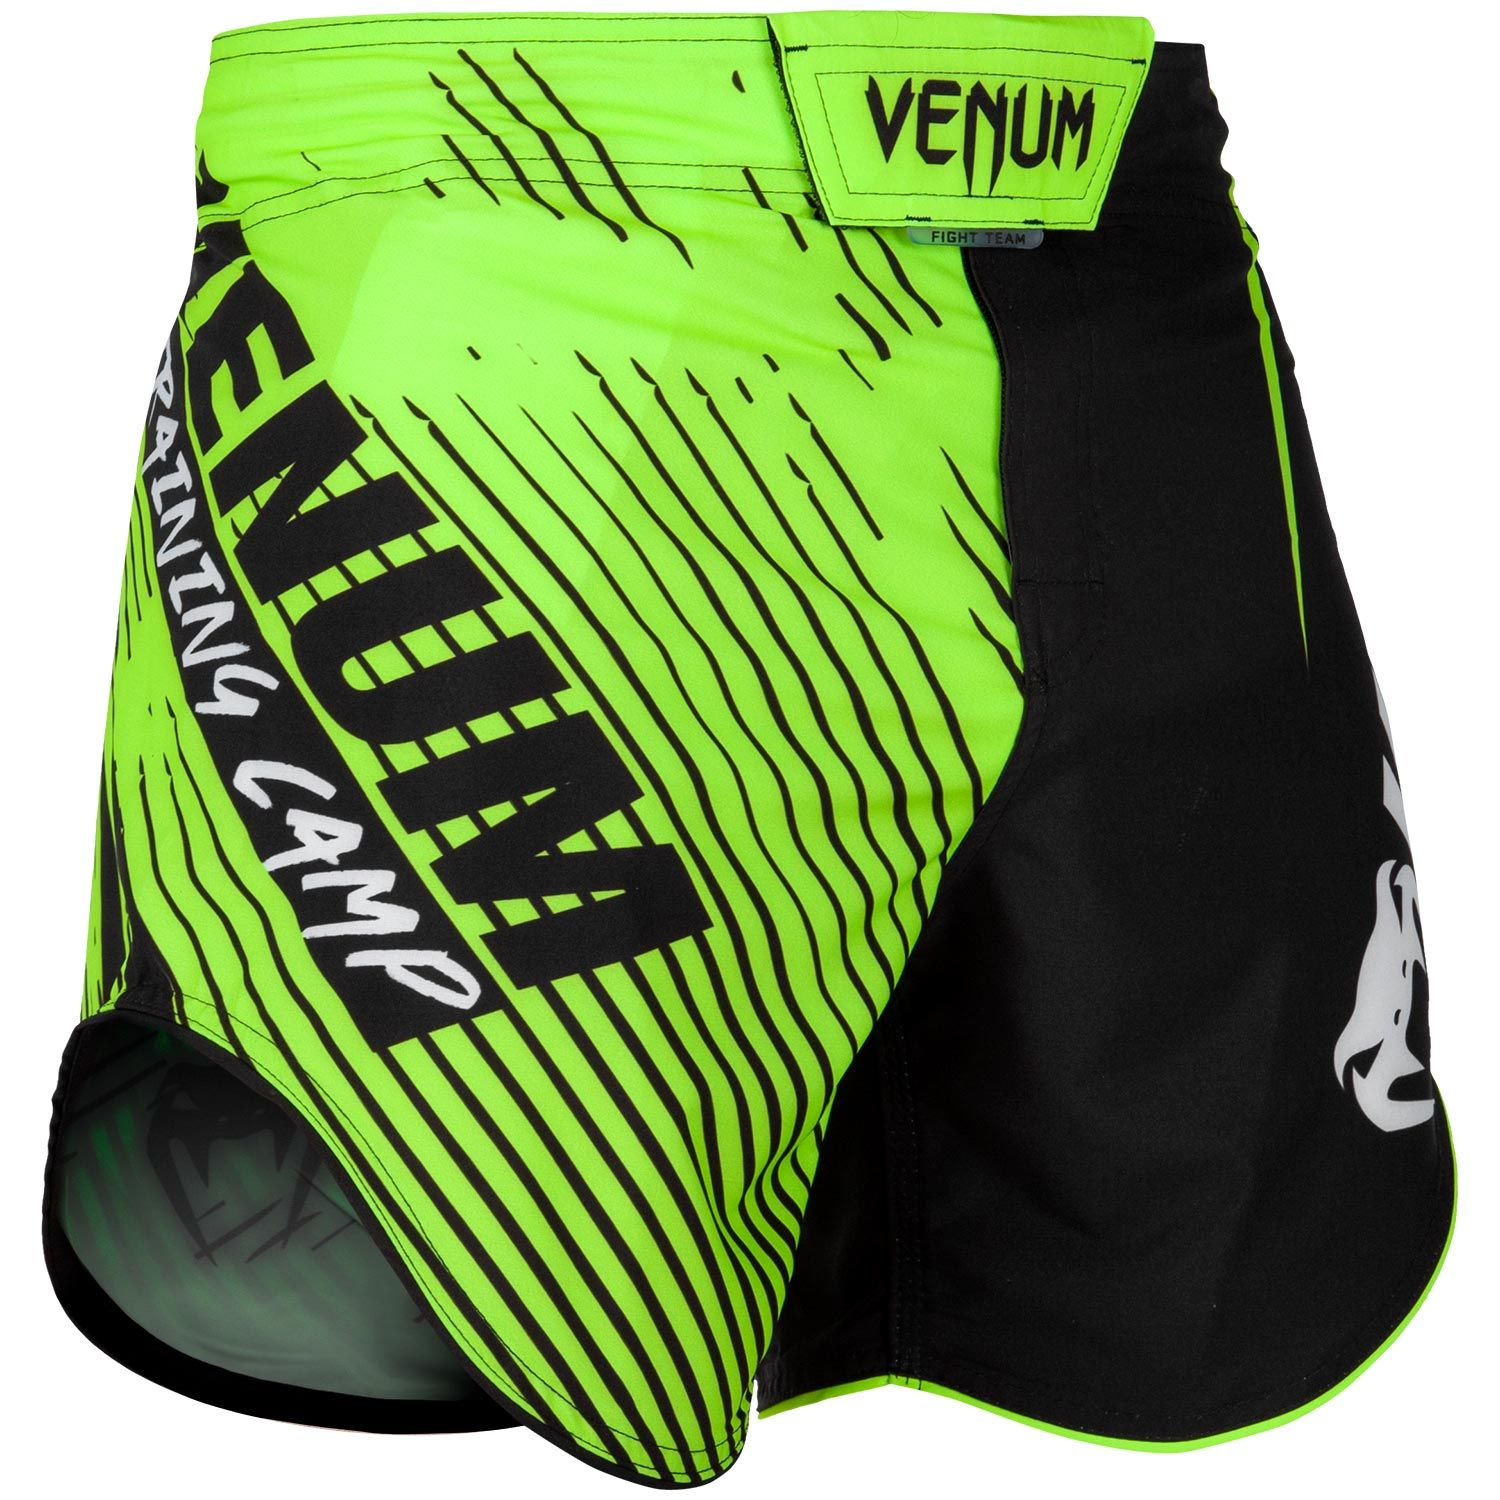 Fightshort Venum training camp 2.0